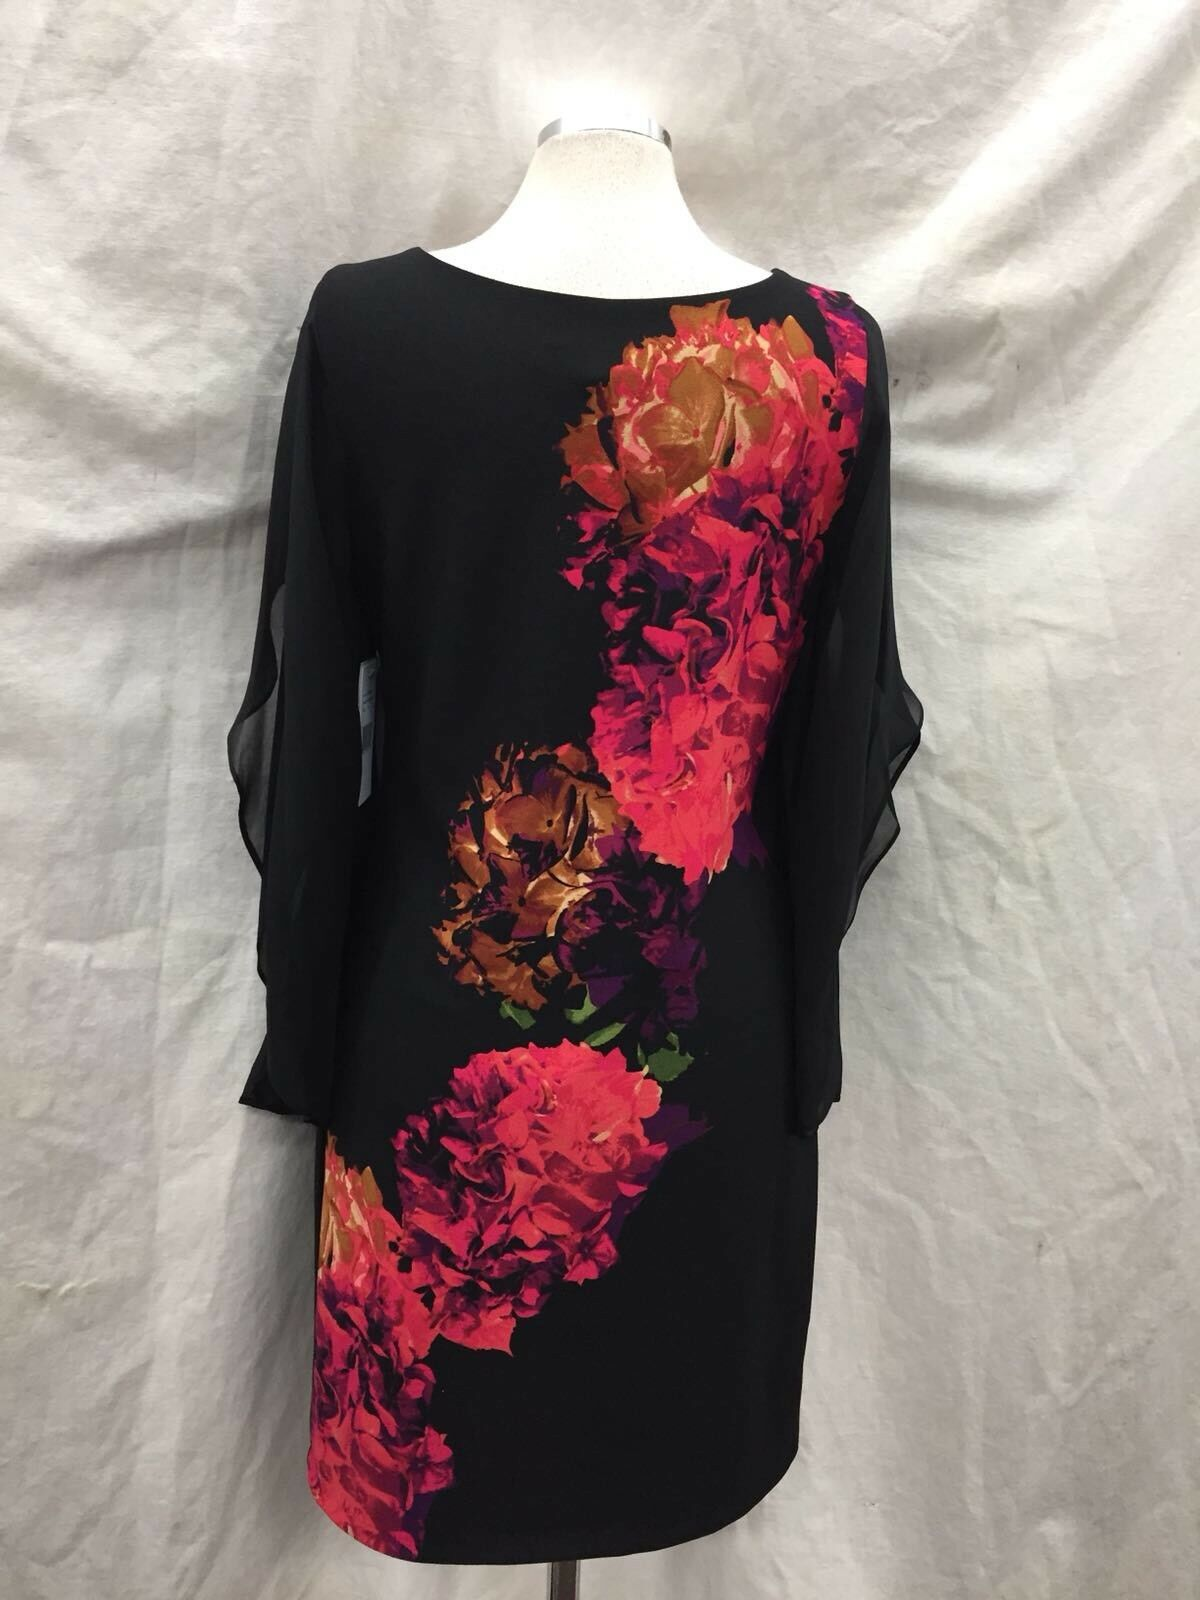 women RICCO DRESS NEW WITH TAG RETAIL RETAIL RETAIL 129 SIZE 22W LENGTH 41  LINED  6f3cce